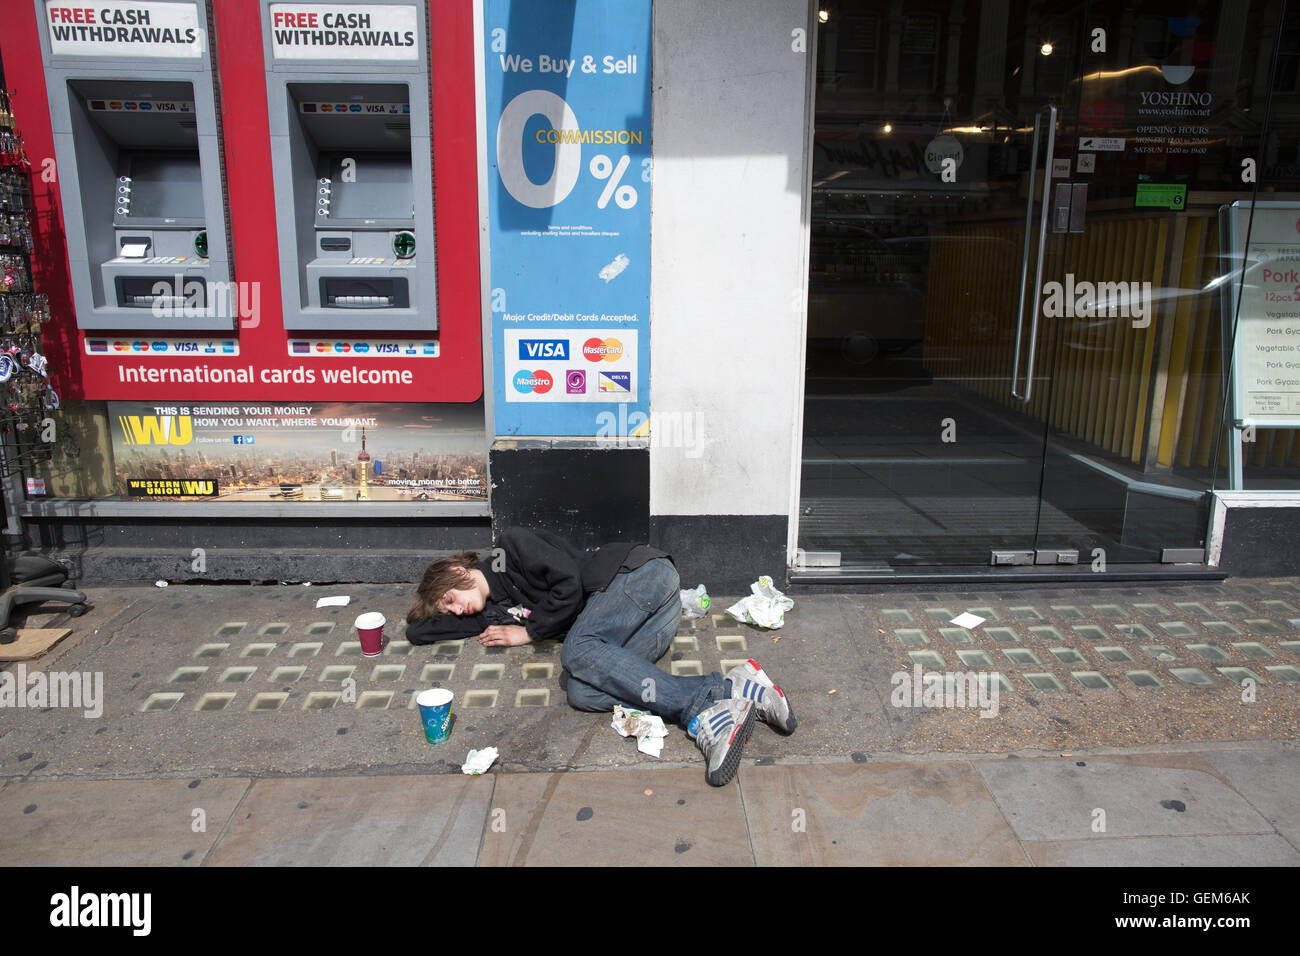 Unconscious drug addict on the streets of London's West End, 28% of men living on streets of London are heroine - Stock Image